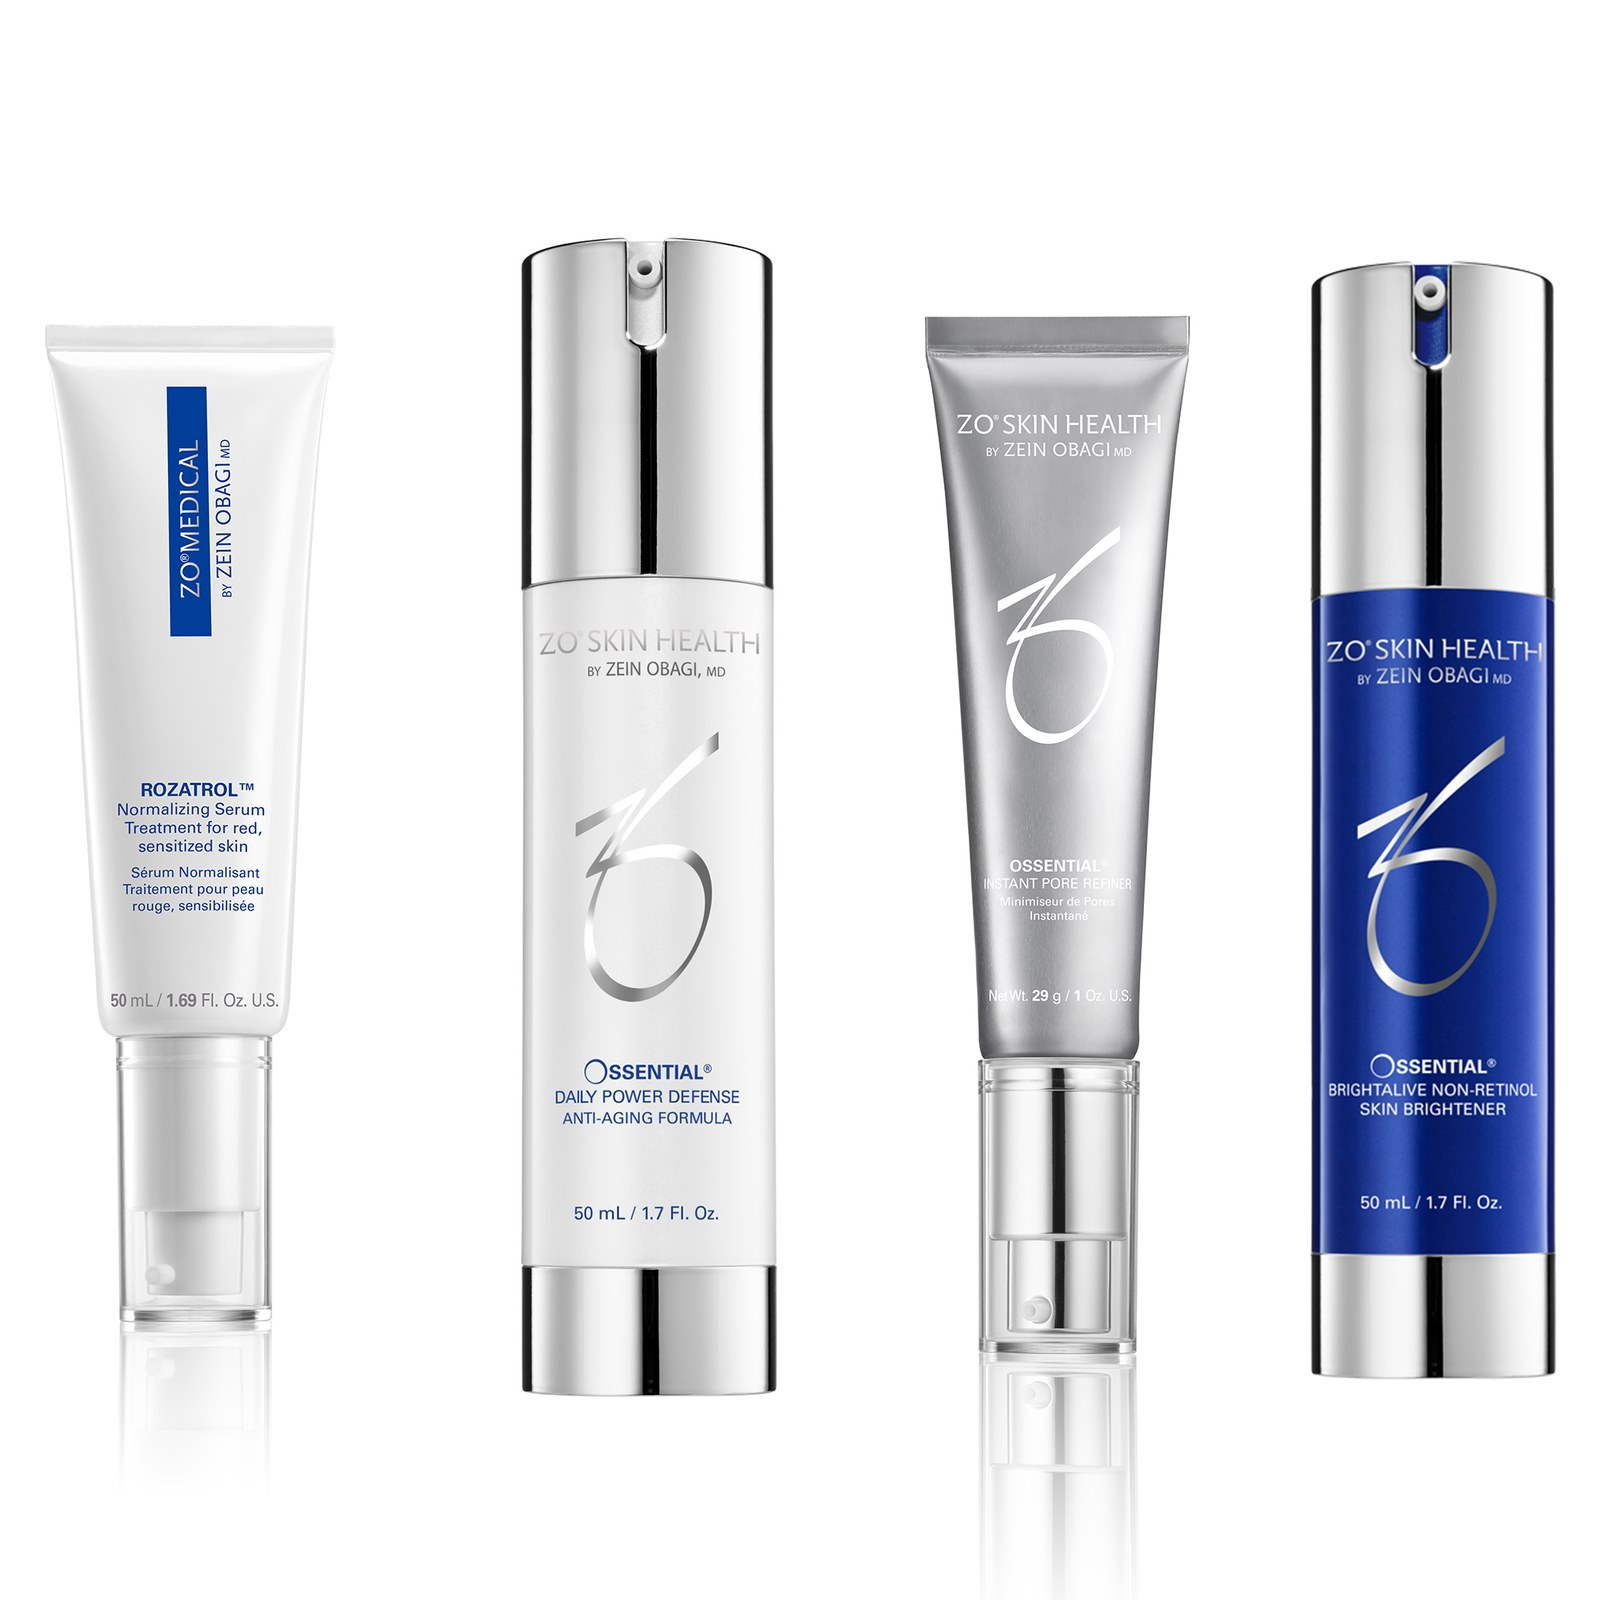 6 Best Skin Care Brands By Dermatologists And Plastic Surgeons Allure Zo Skin Health Star Products In 2020 Best Skin Care Brands Skin Care Brands Anti Aging Skin Care